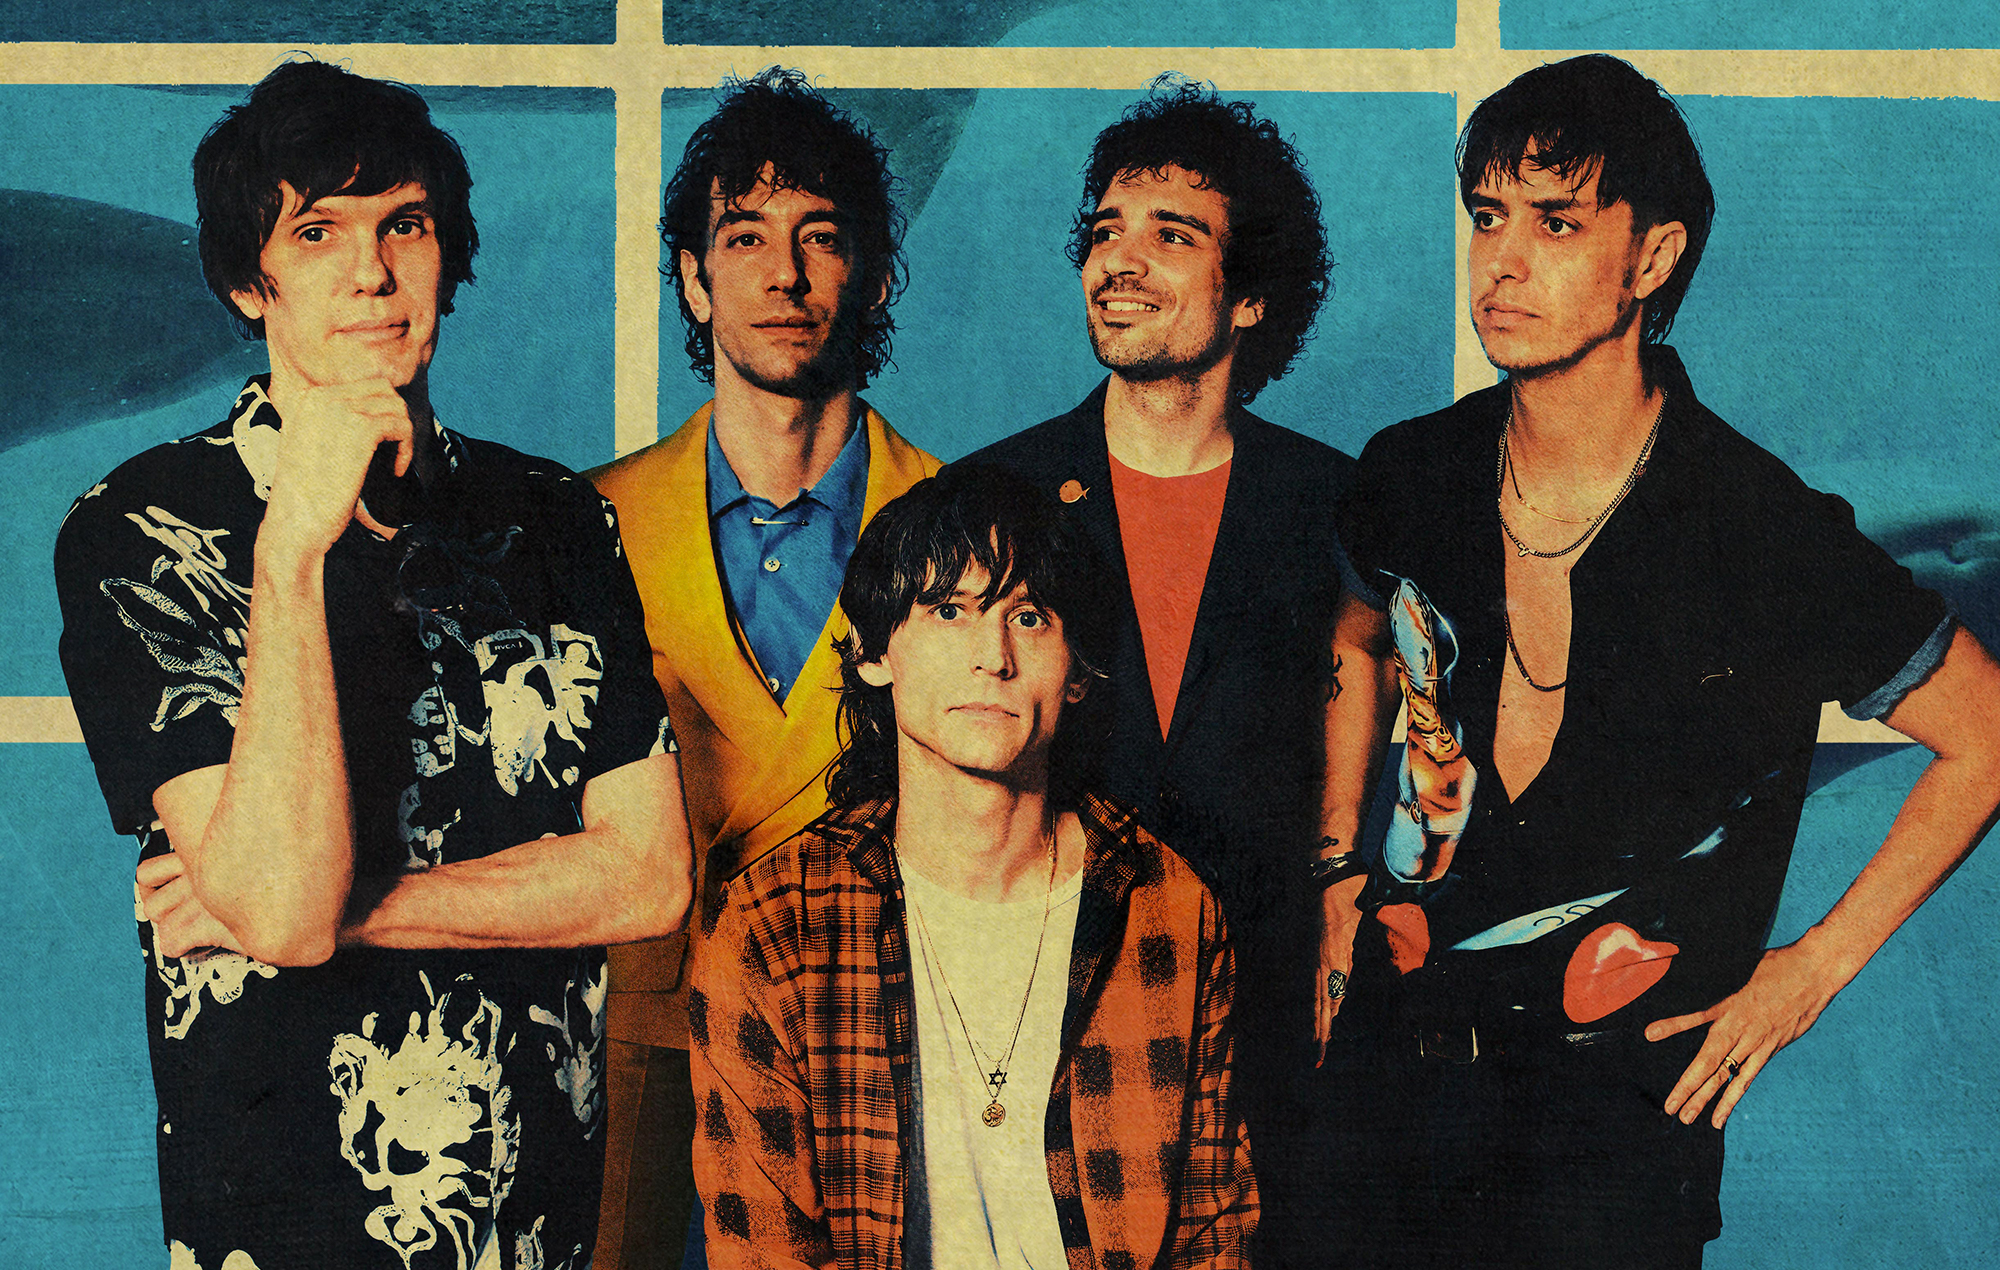 The Strokes to perform at Splendour In The Grass 2020